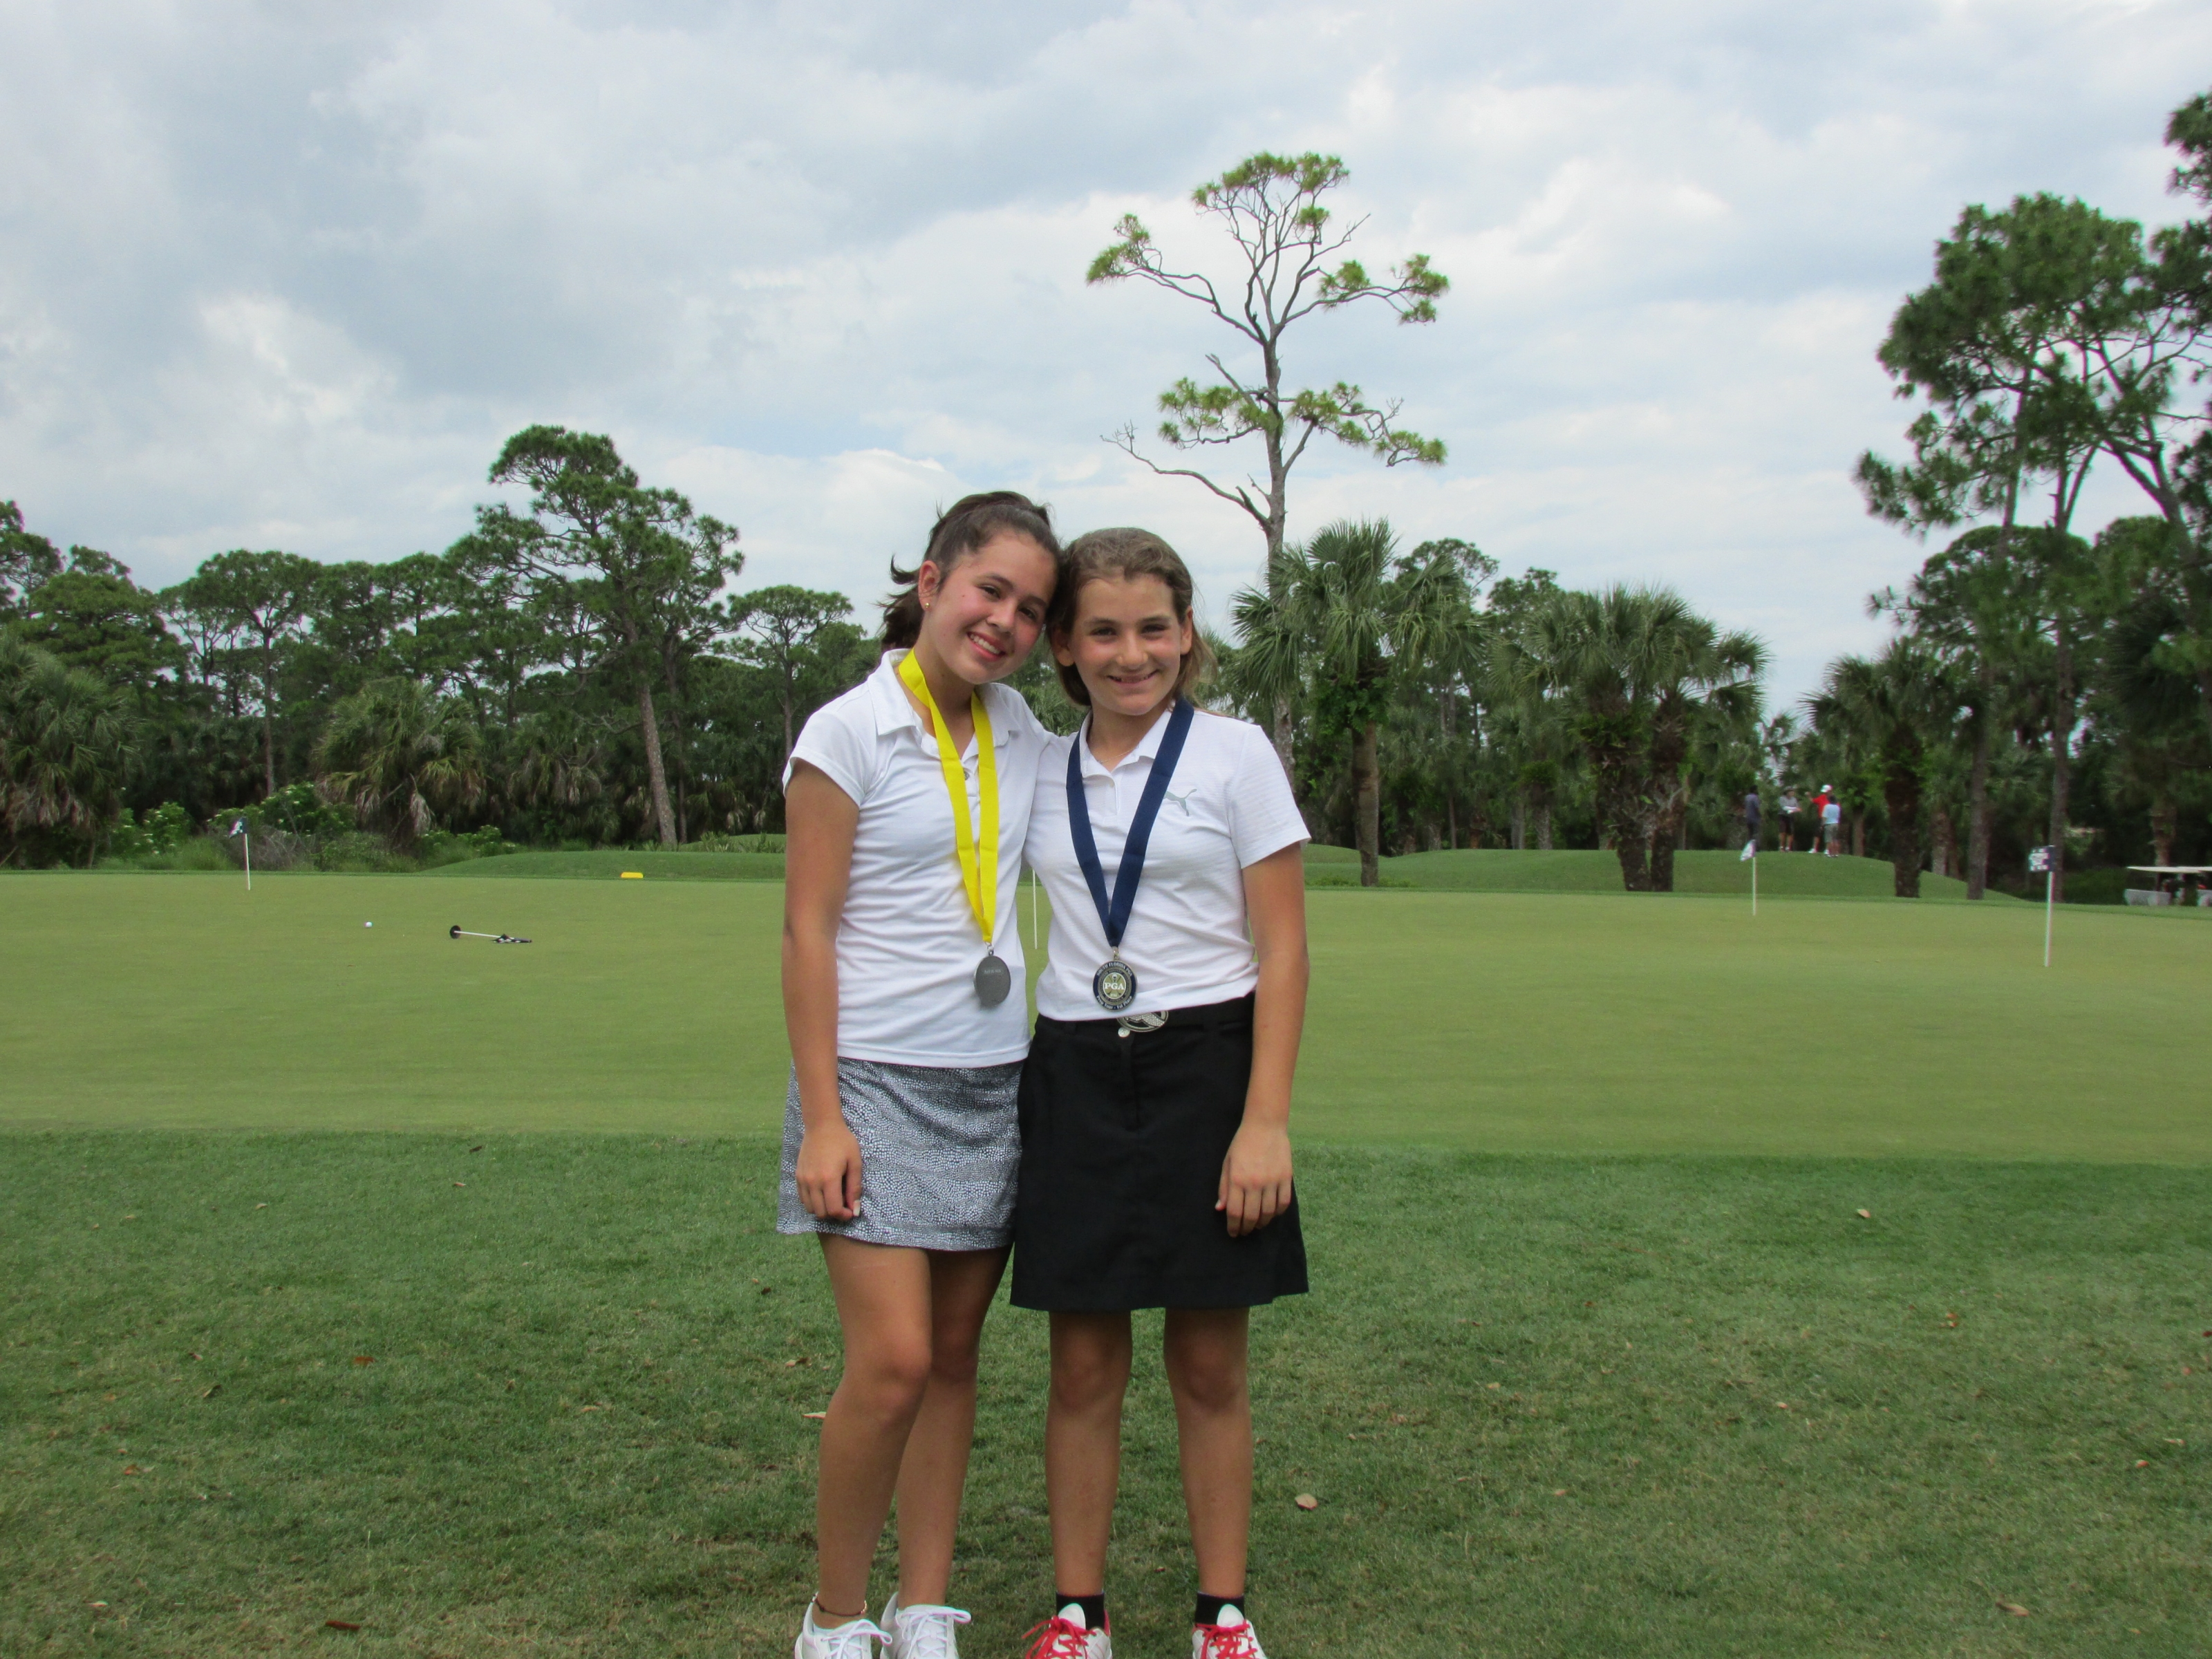 South Florida JR Section - PGA